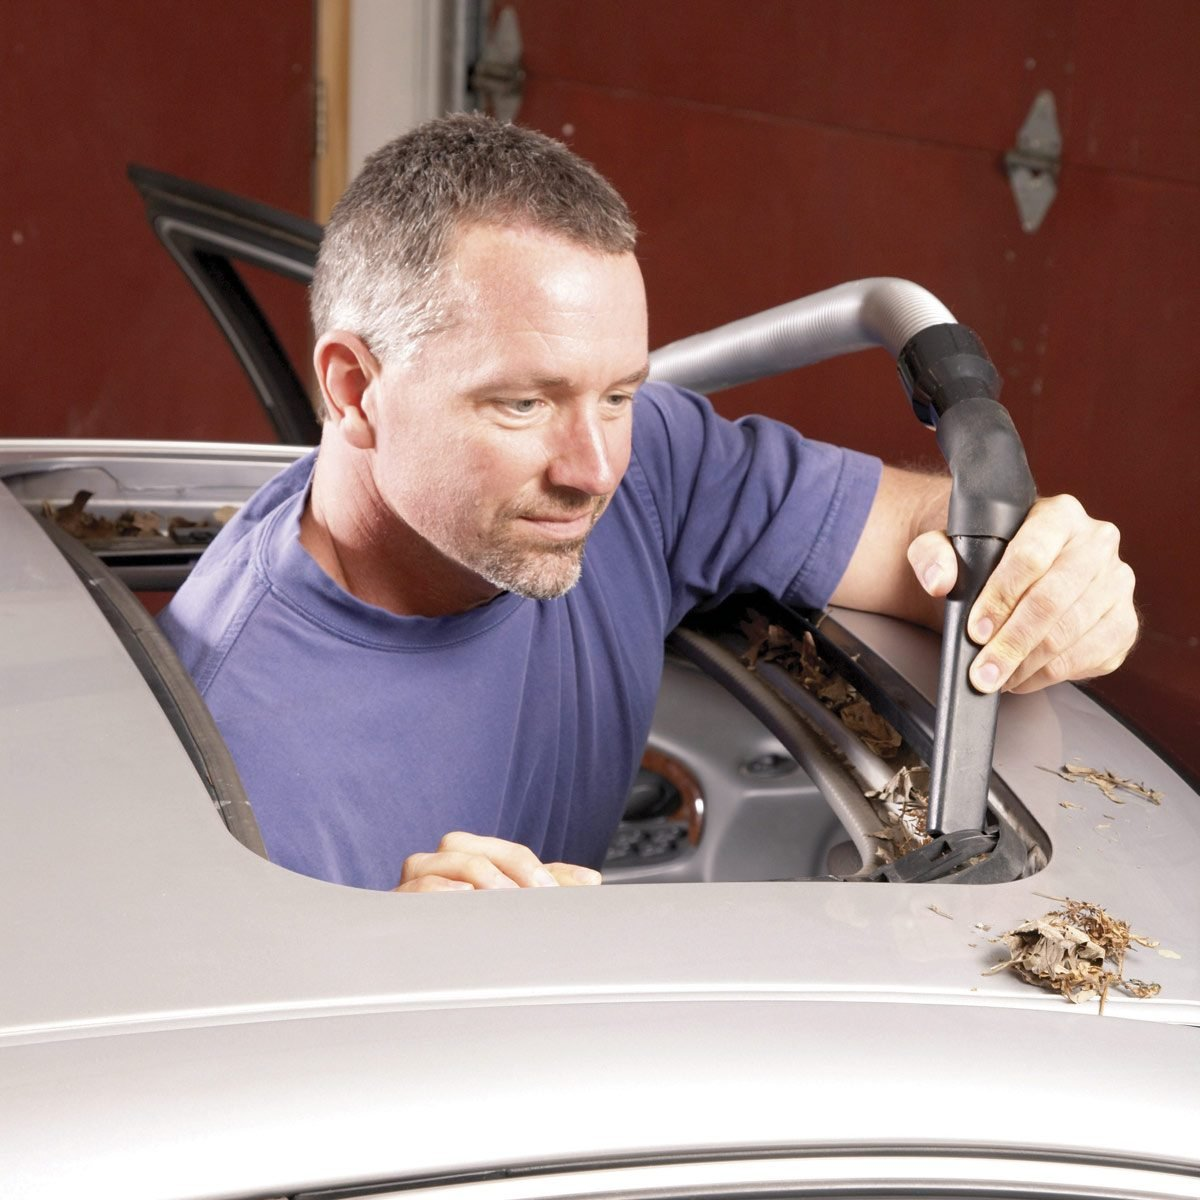 How To Fix A Leaking Sunroof Family Handyman The 2003 Camry Wiring Diagram Open Your And Look For Drain Holes In Both Front Corners Those Tubes Run Through Door Pillars Rocker Panels